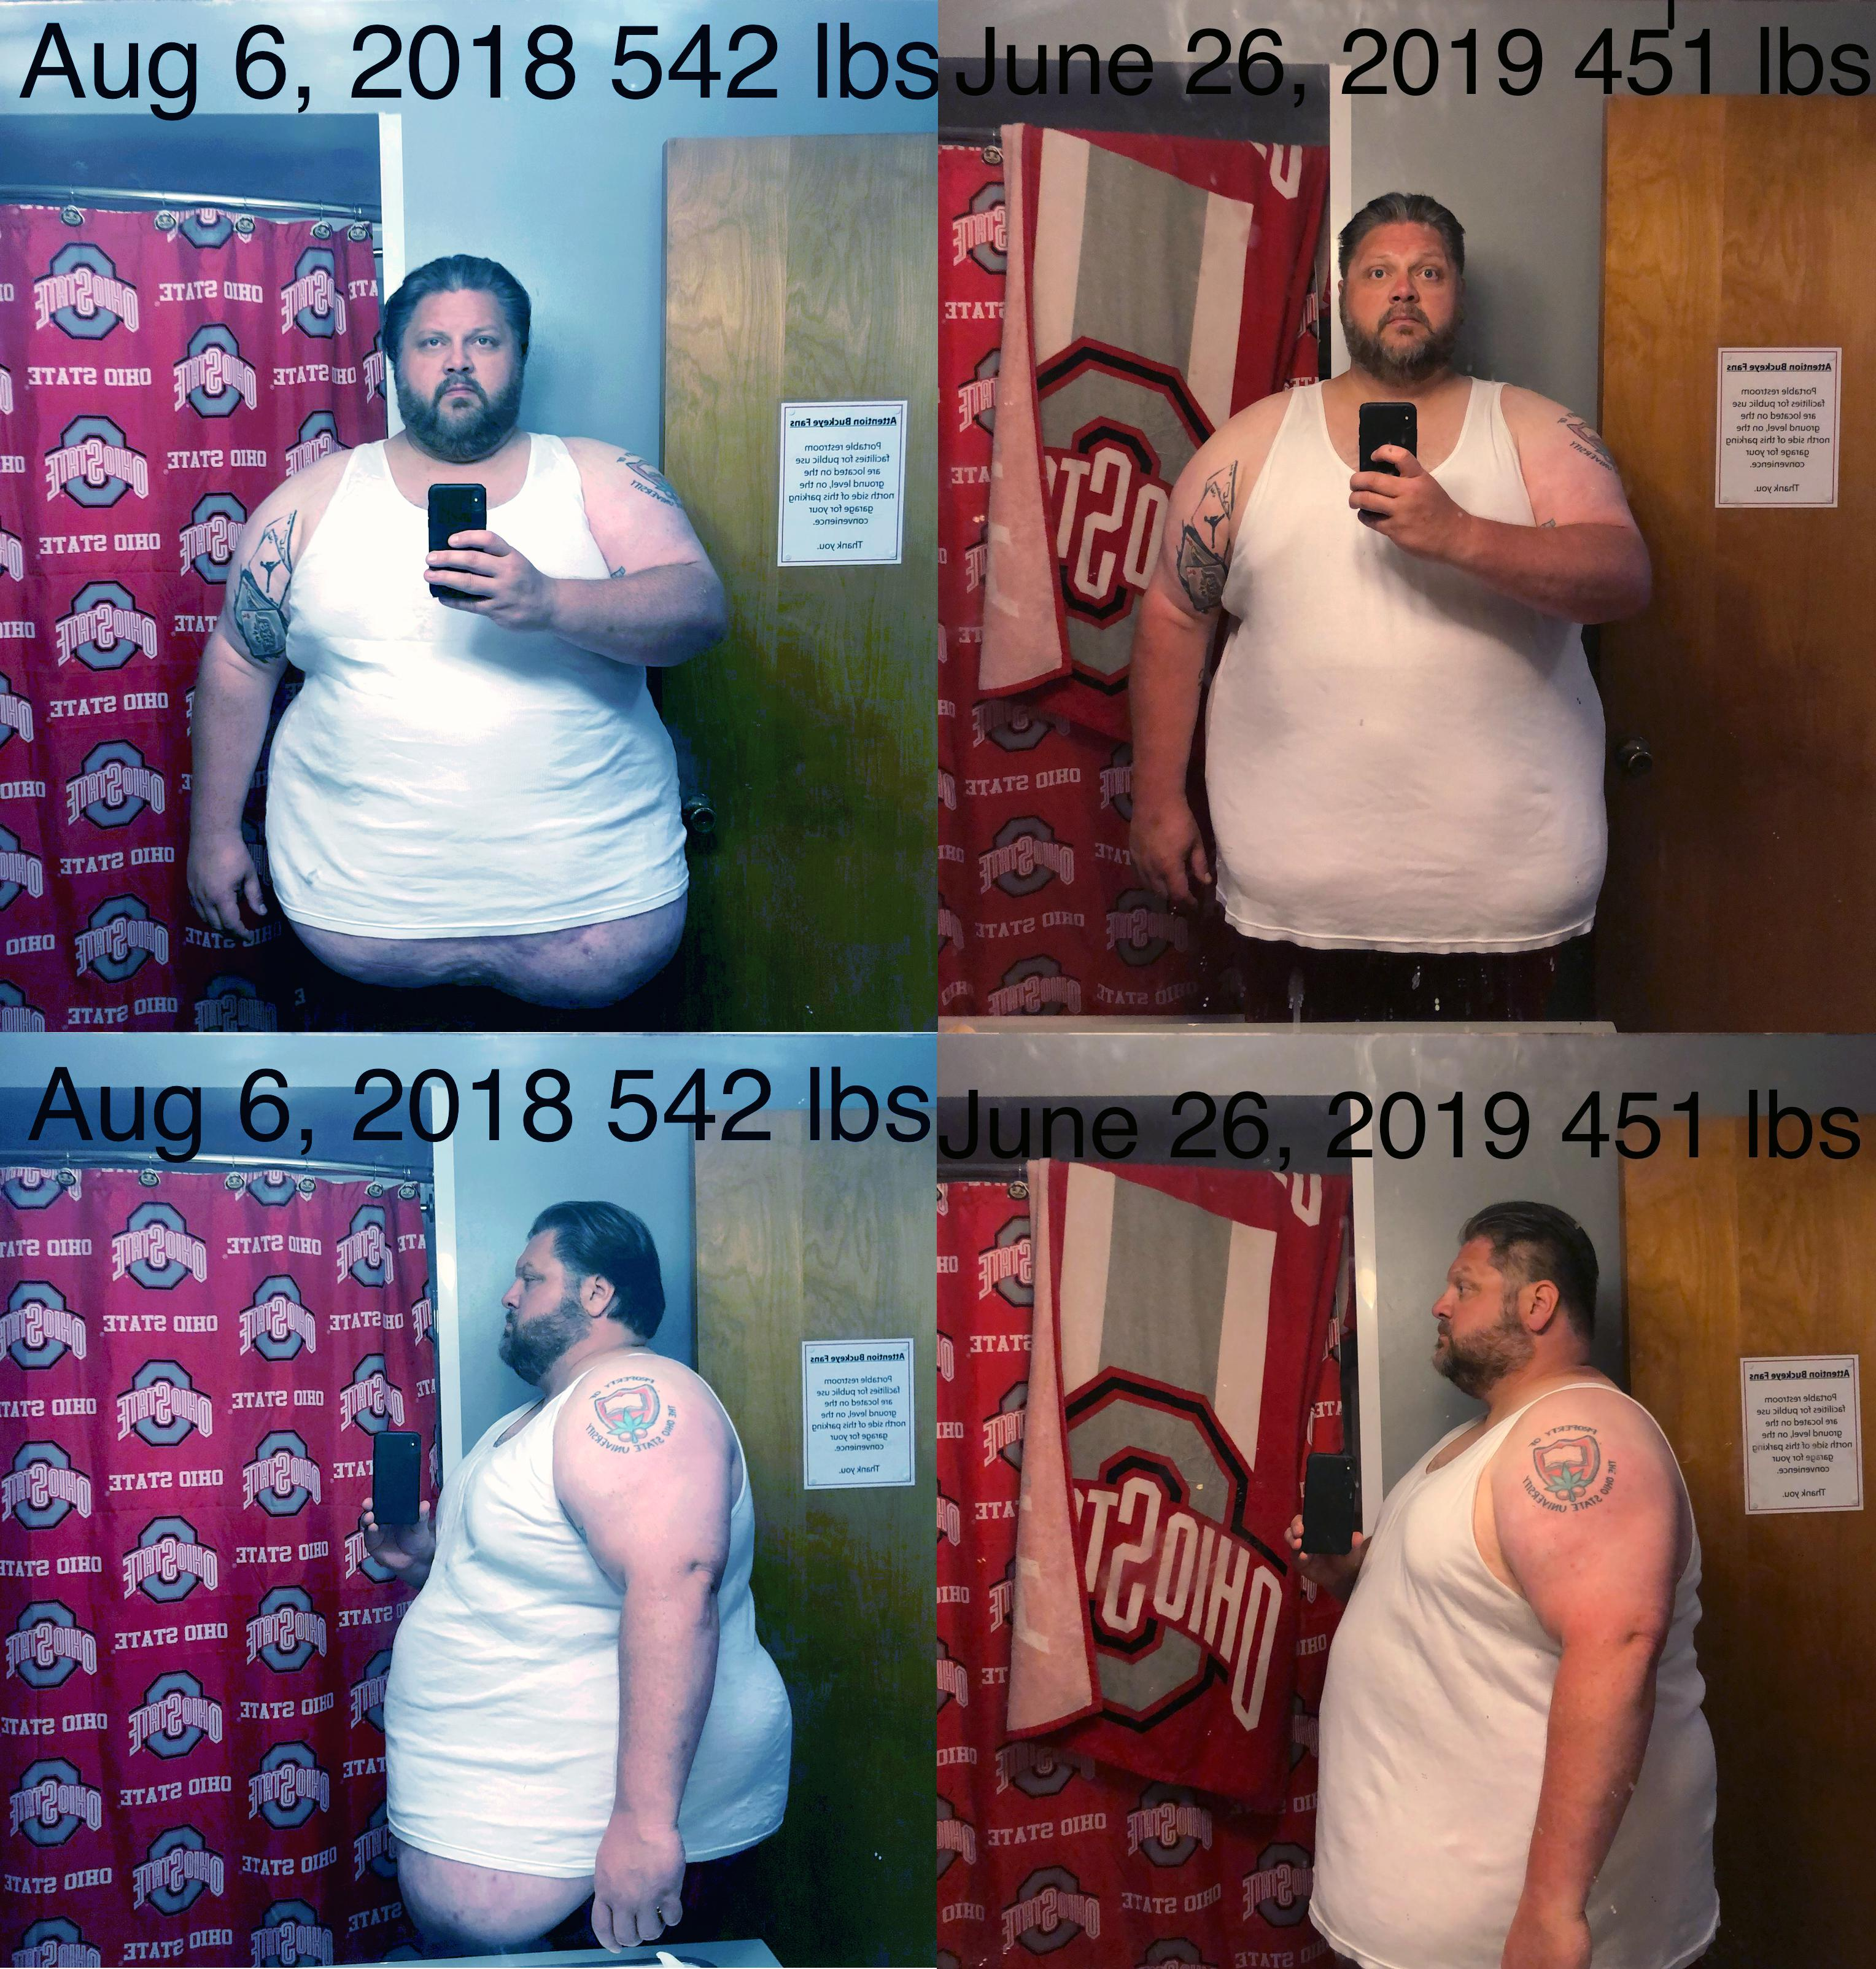 6 foot 1 Male Before and After 91 lbs Fat Loss 542 lbs to 451 lbs